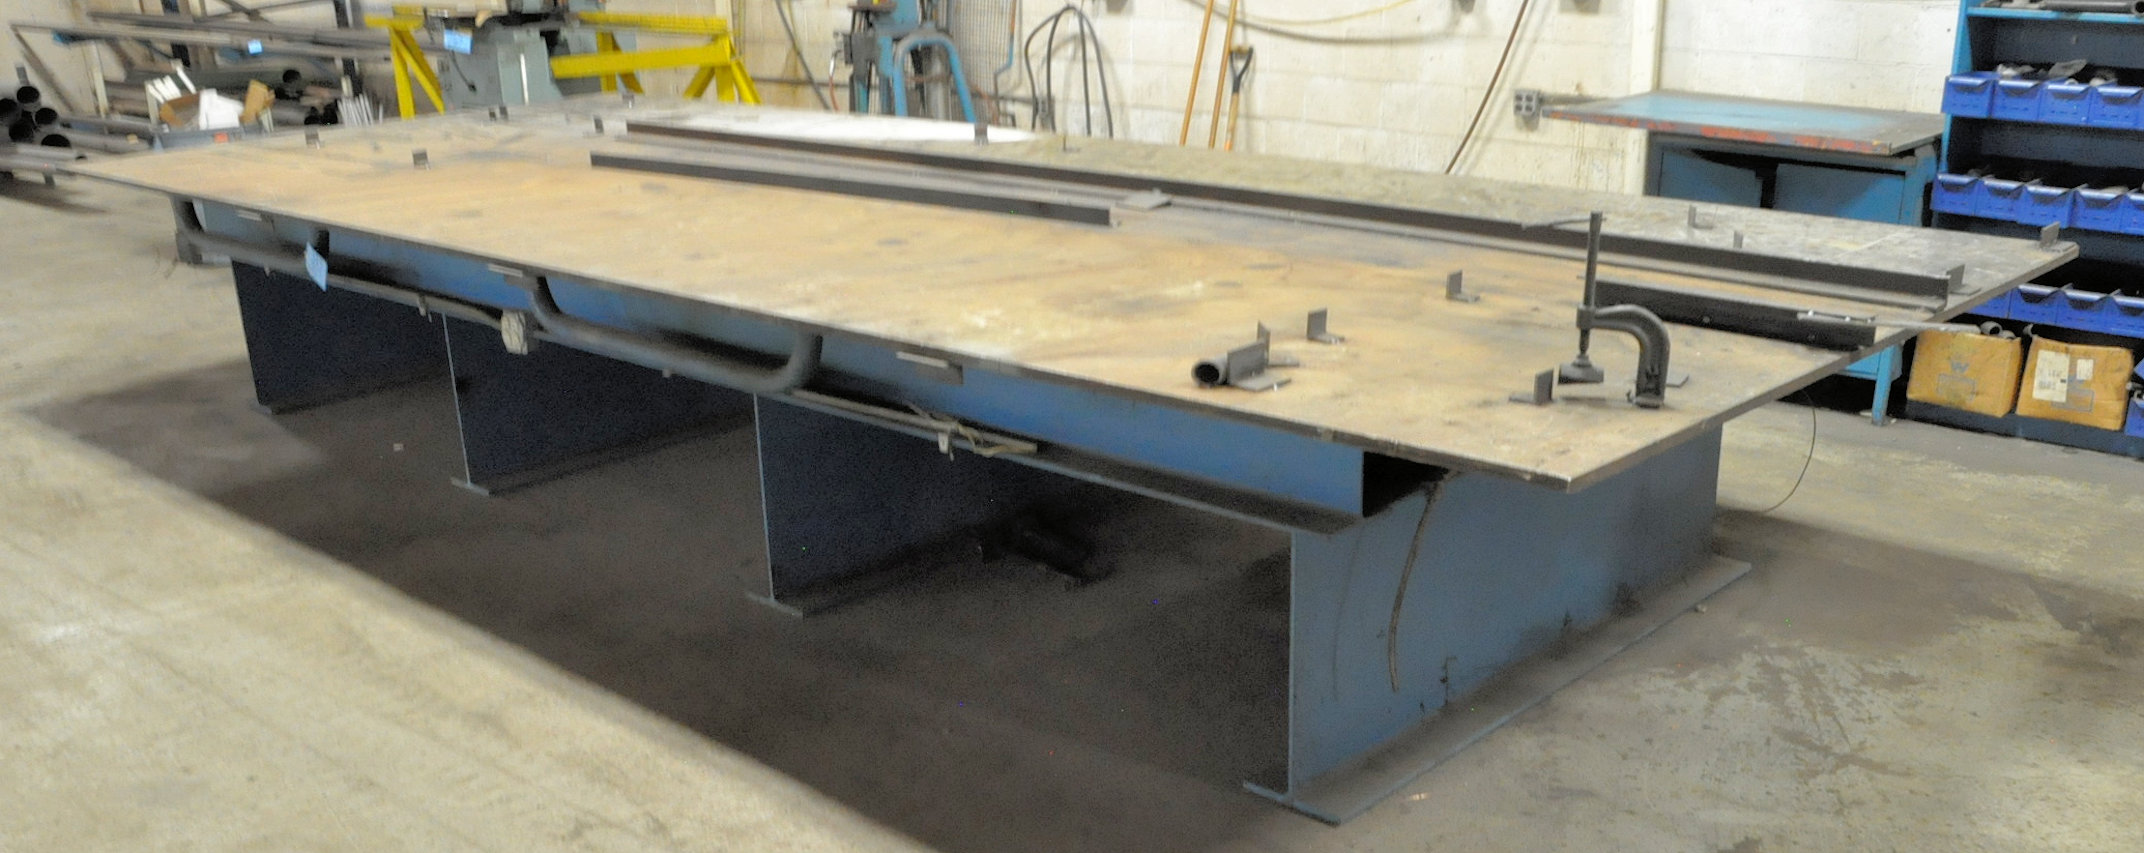 "240"" L x 96"" W x 35"" H x 1"" Thick Steel Welding Table"